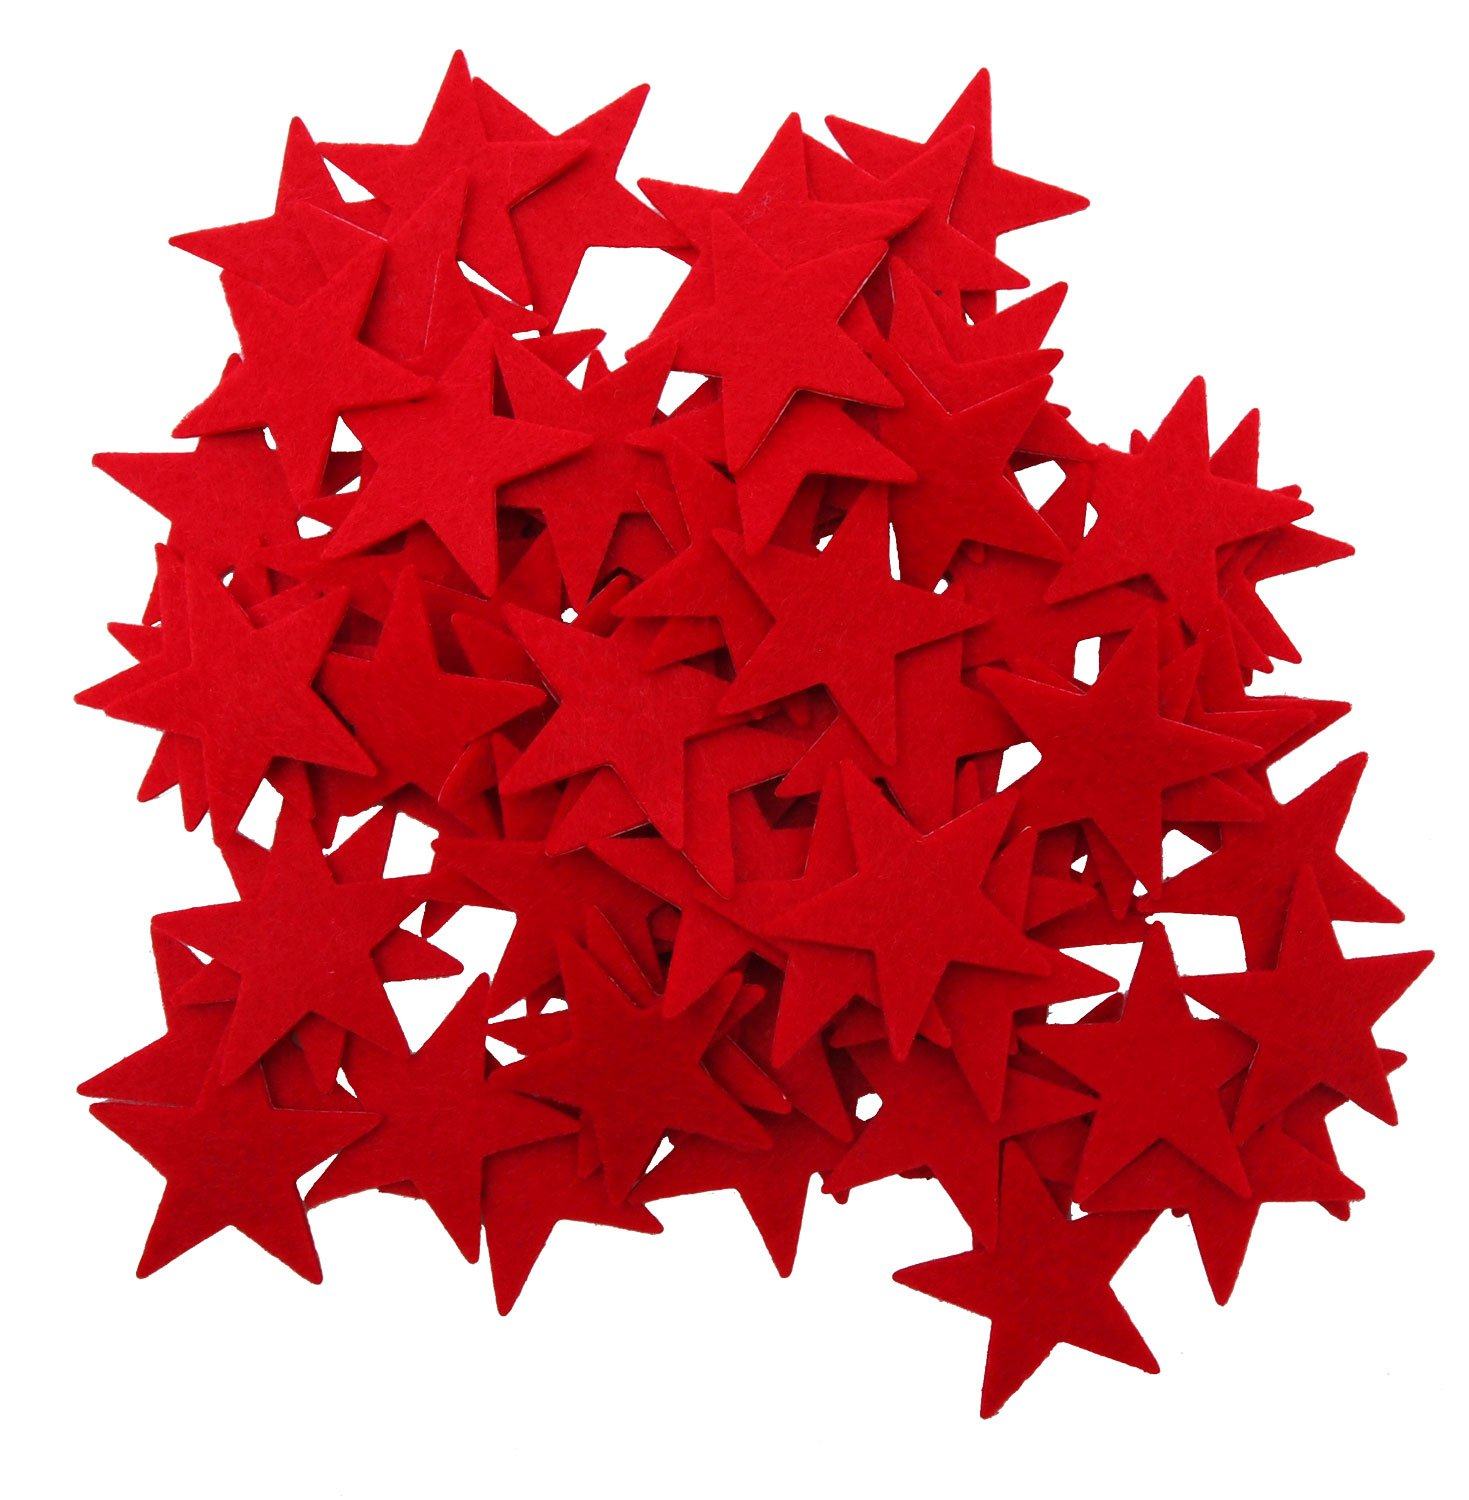 Playfully Ever After 1.5 Inch Red 85 pc Felt Star Stickers